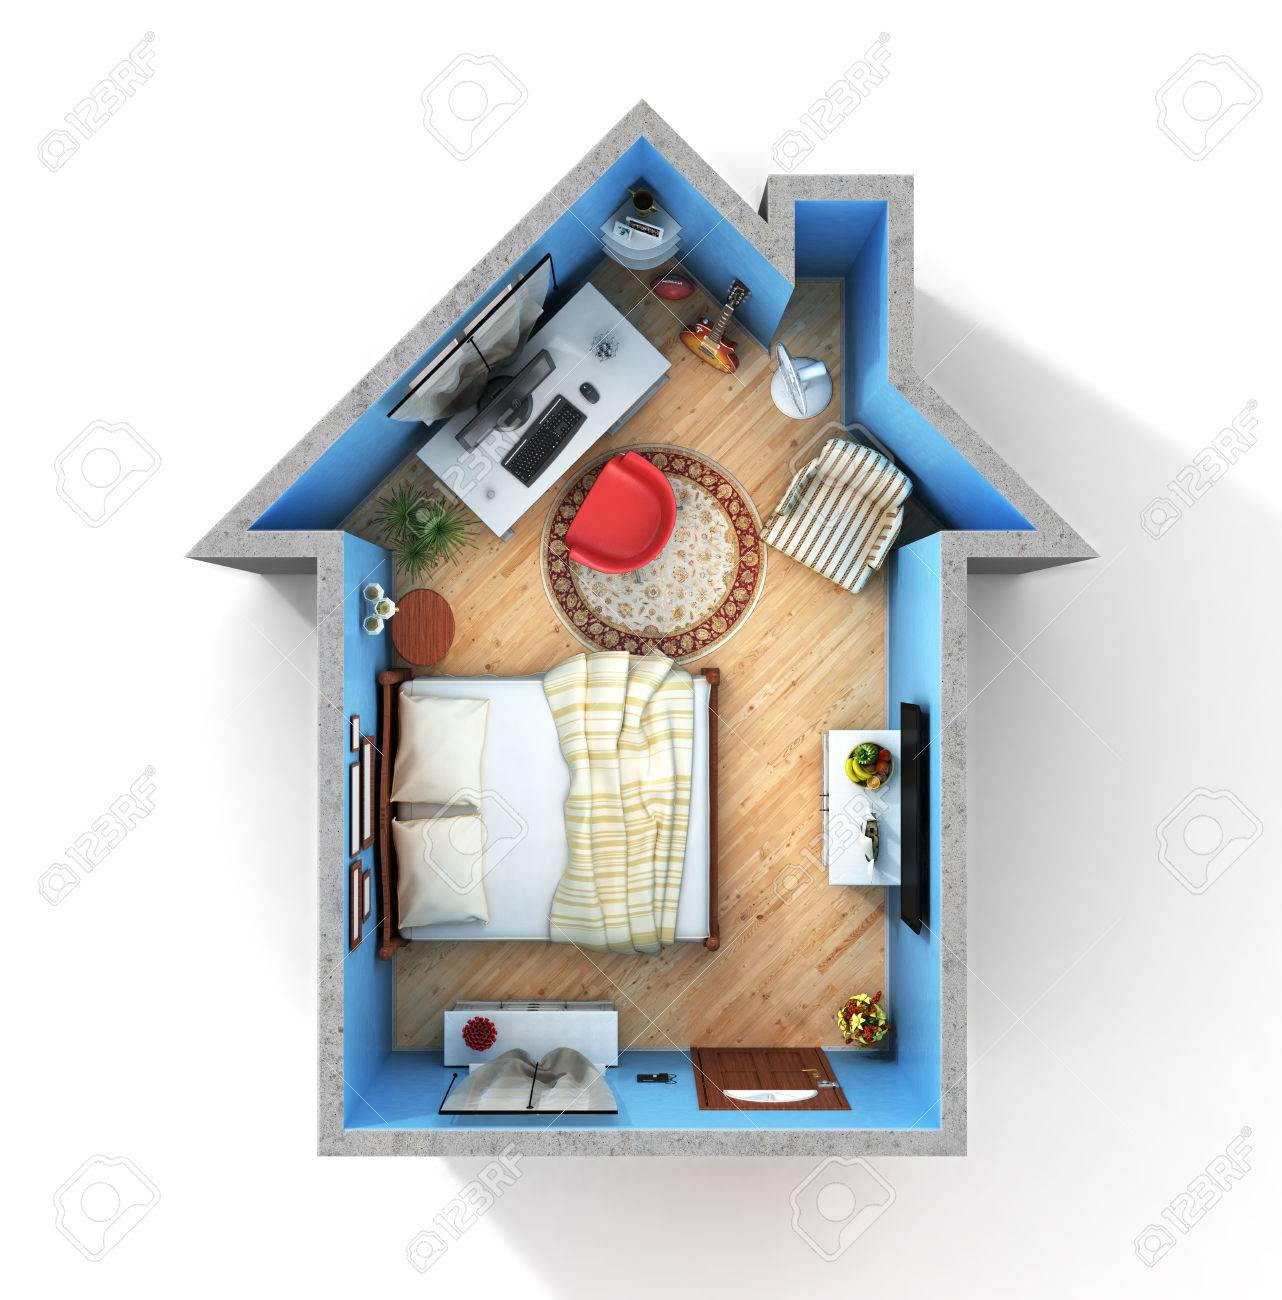 Concept Of Home. Flat Full Of Things In Form Of House In Top View.